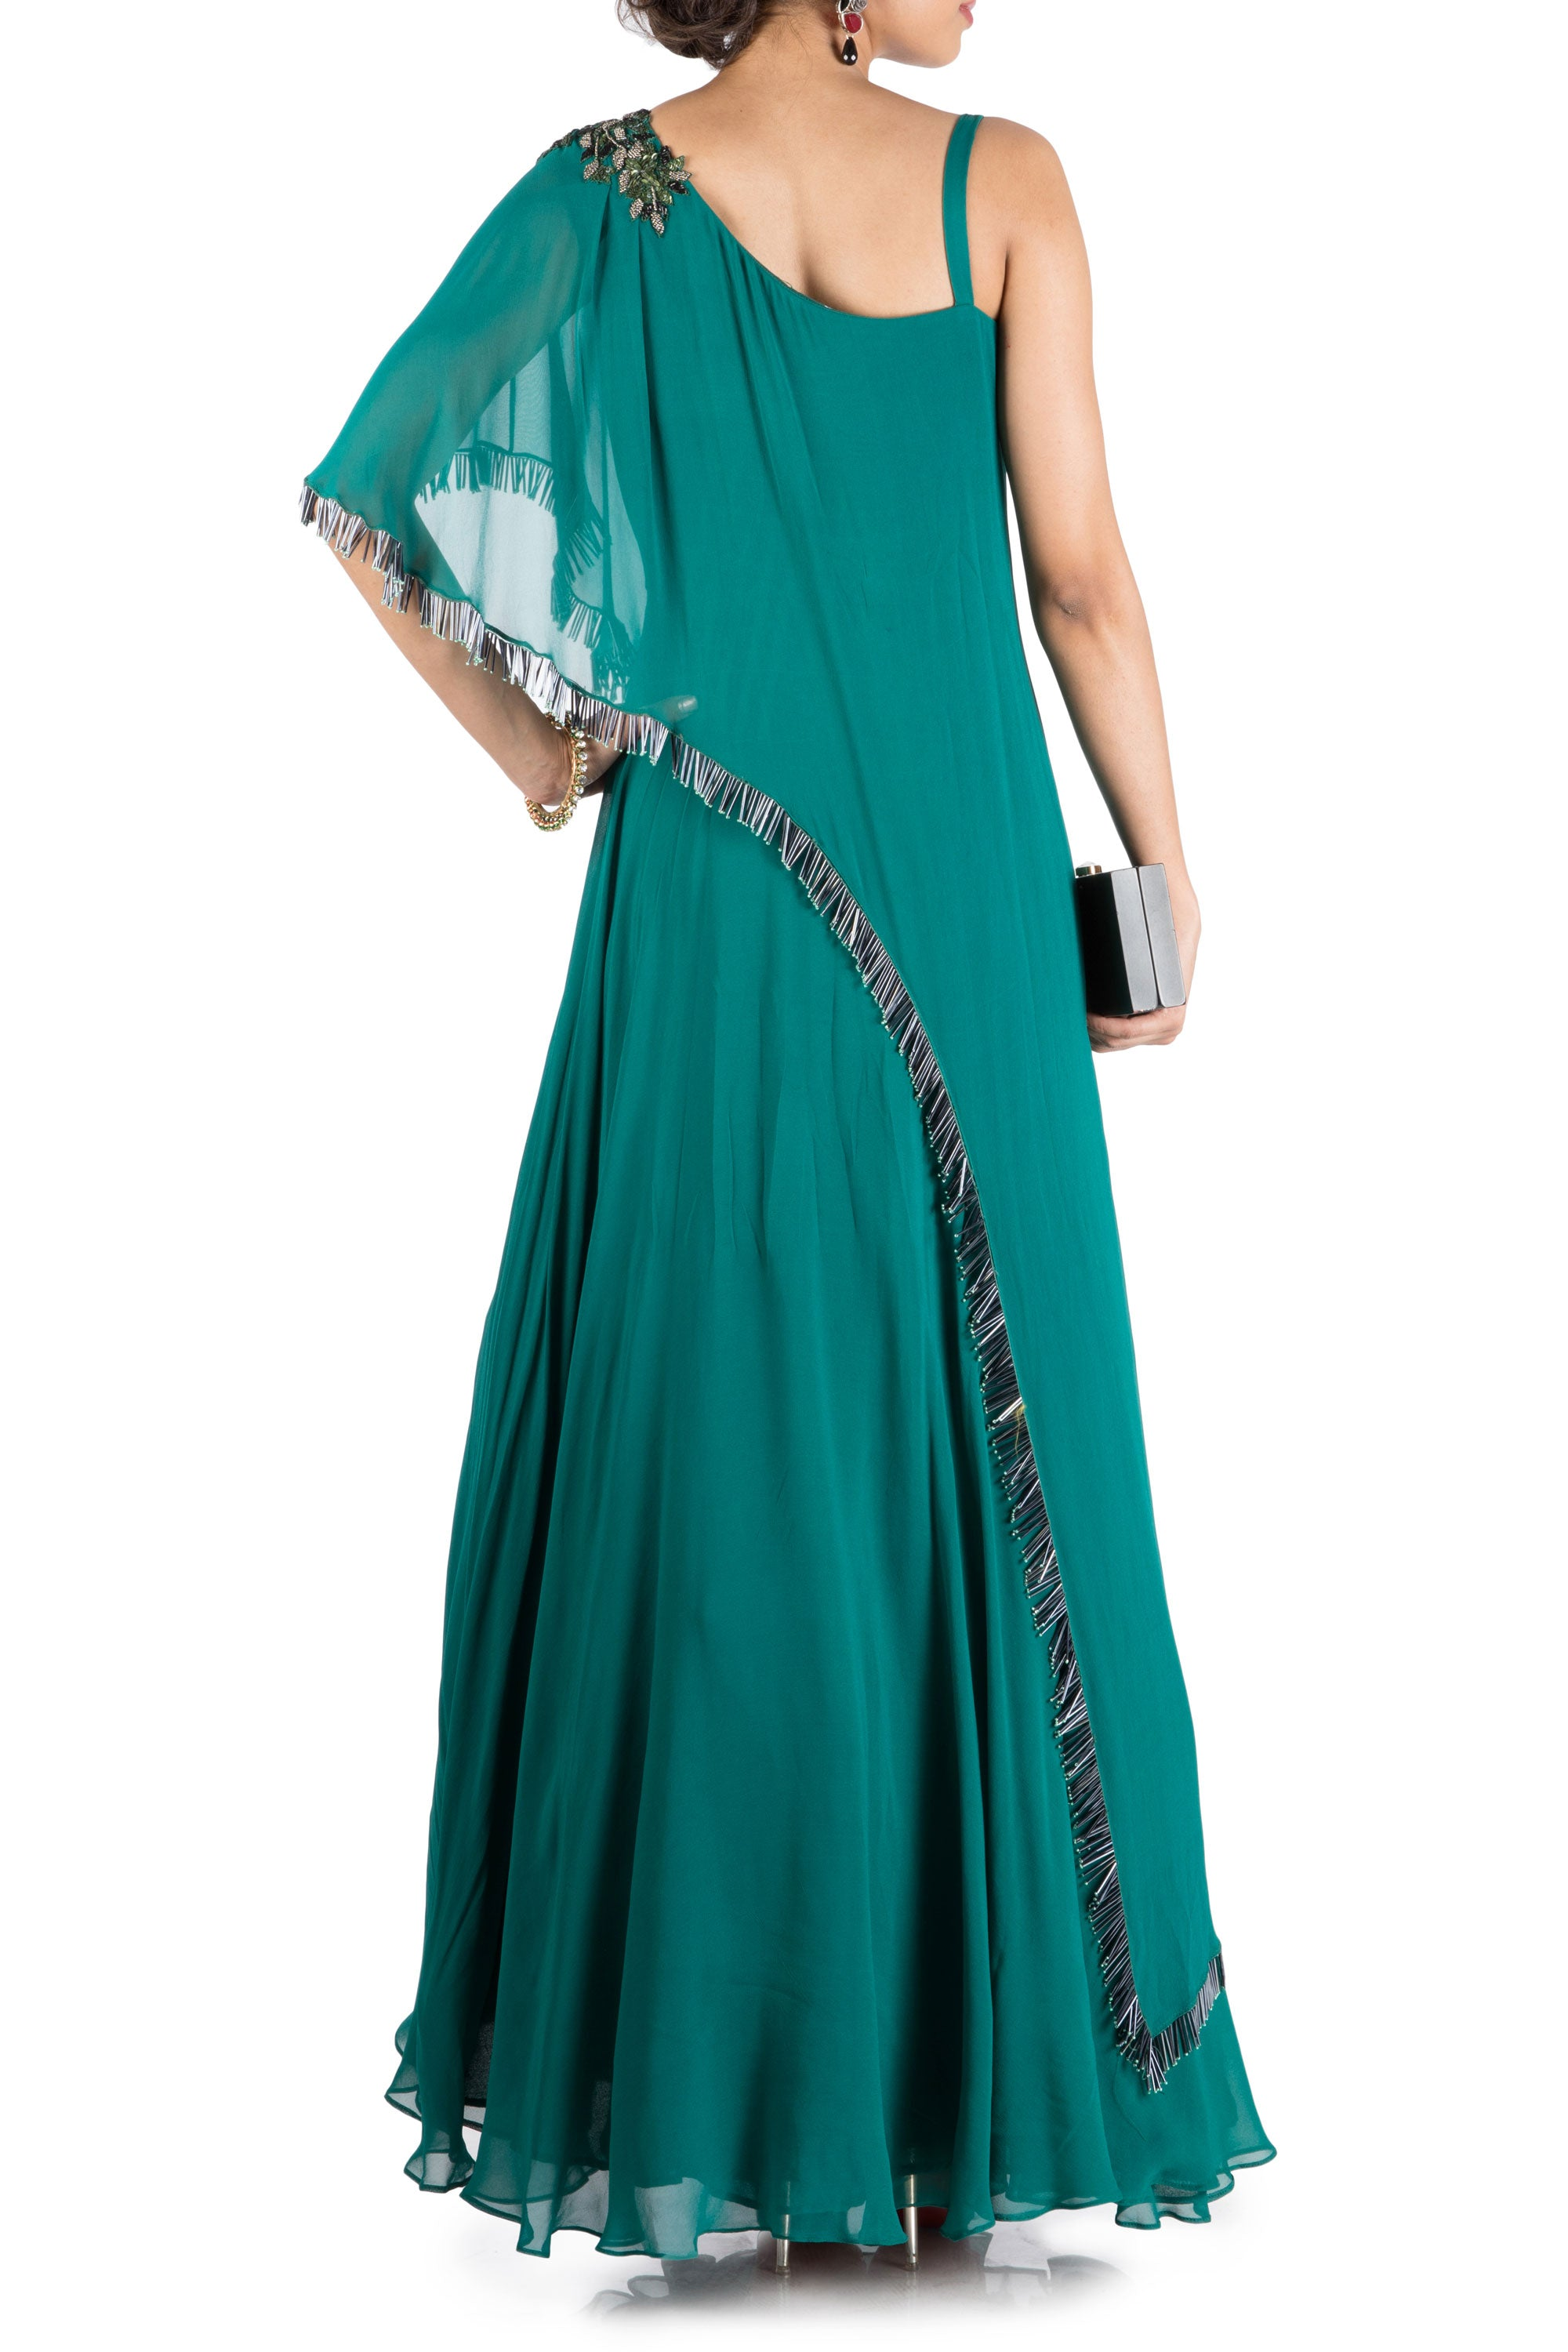 Teal Green One Side Cape Flare Gown Back